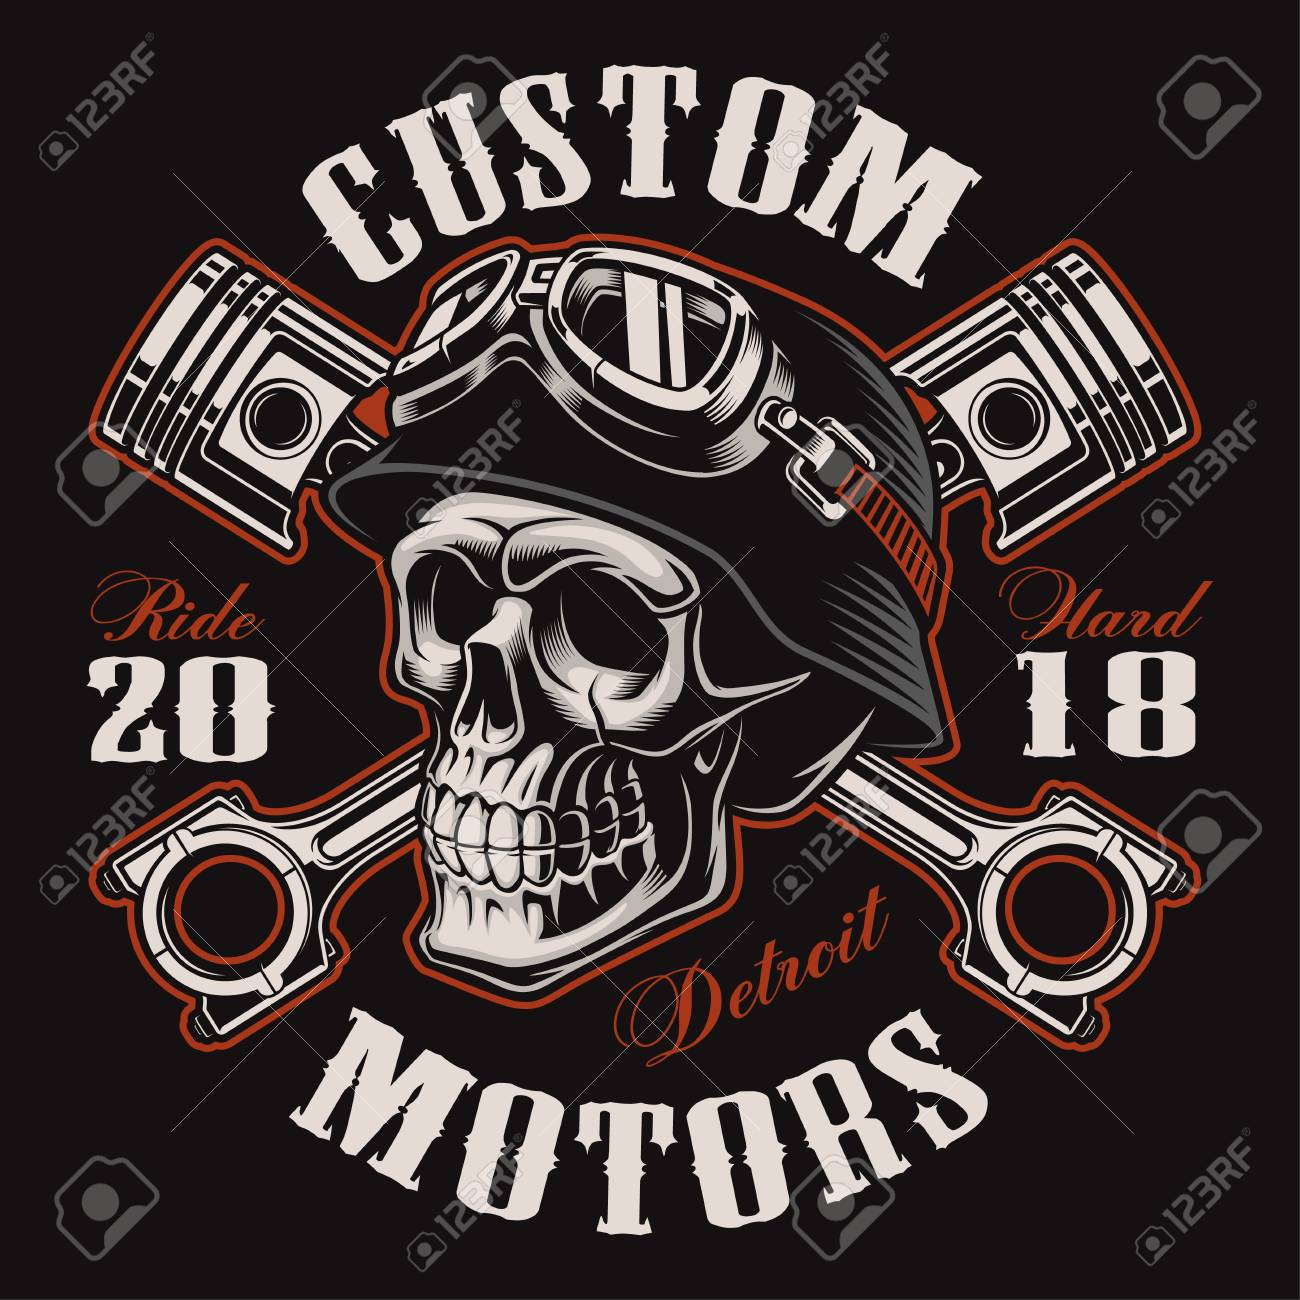 237a8e7850573 Biker skull with crossed pistons. Stock Vector - 98170727